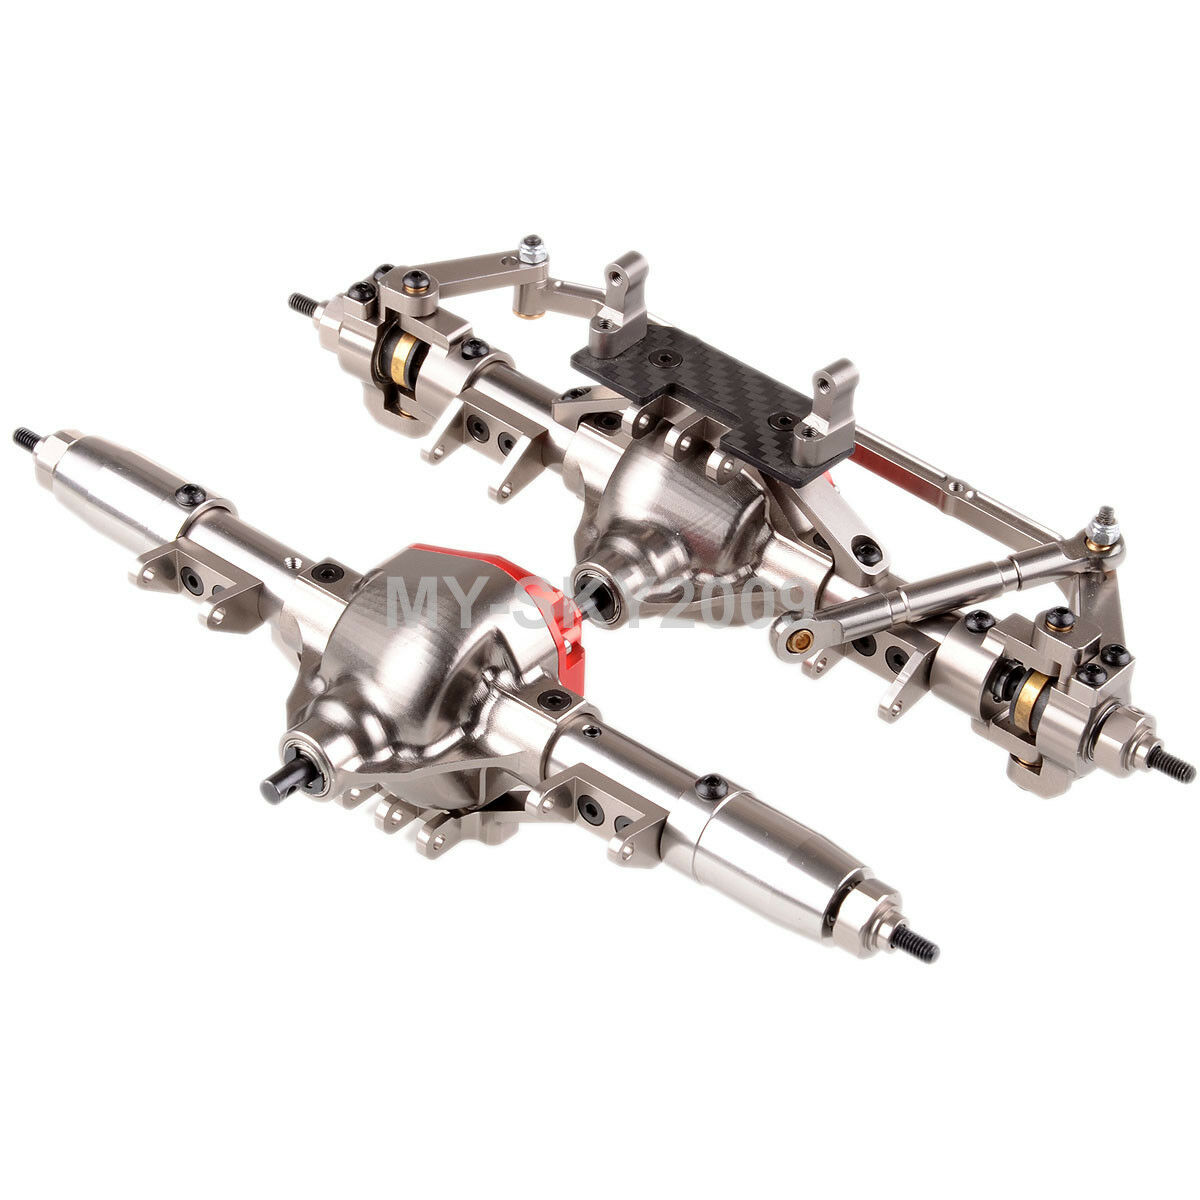 CNC  Aluminum F&R Axle completared Assembly For RC 1 10 Axial SCX10 AX90044 AX90028  disponibile